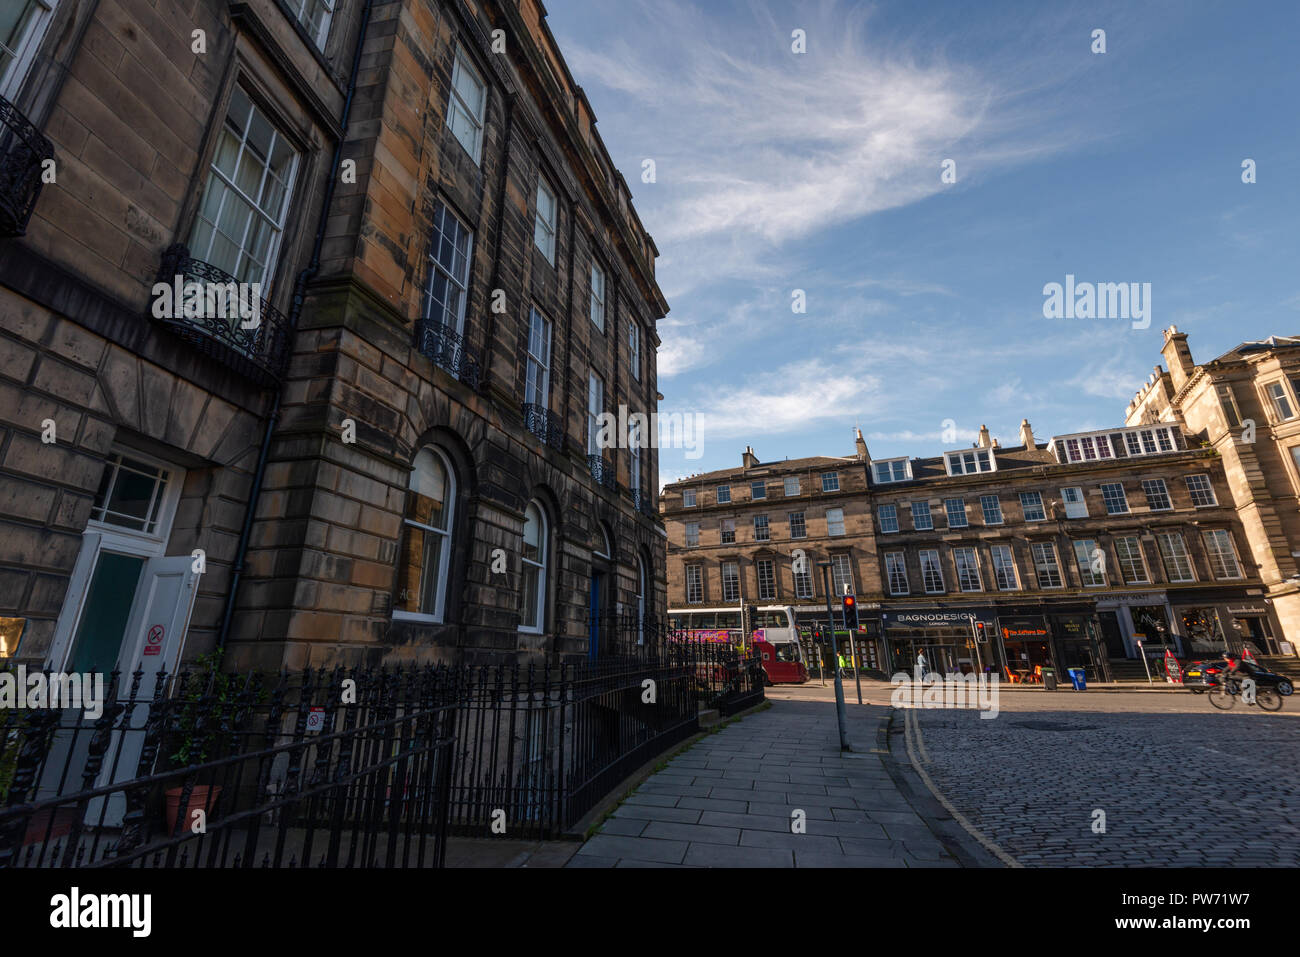 Bagno Design Edinburgh Charlotte Square Edinburgh Scotland United Kingdom Stock Photo